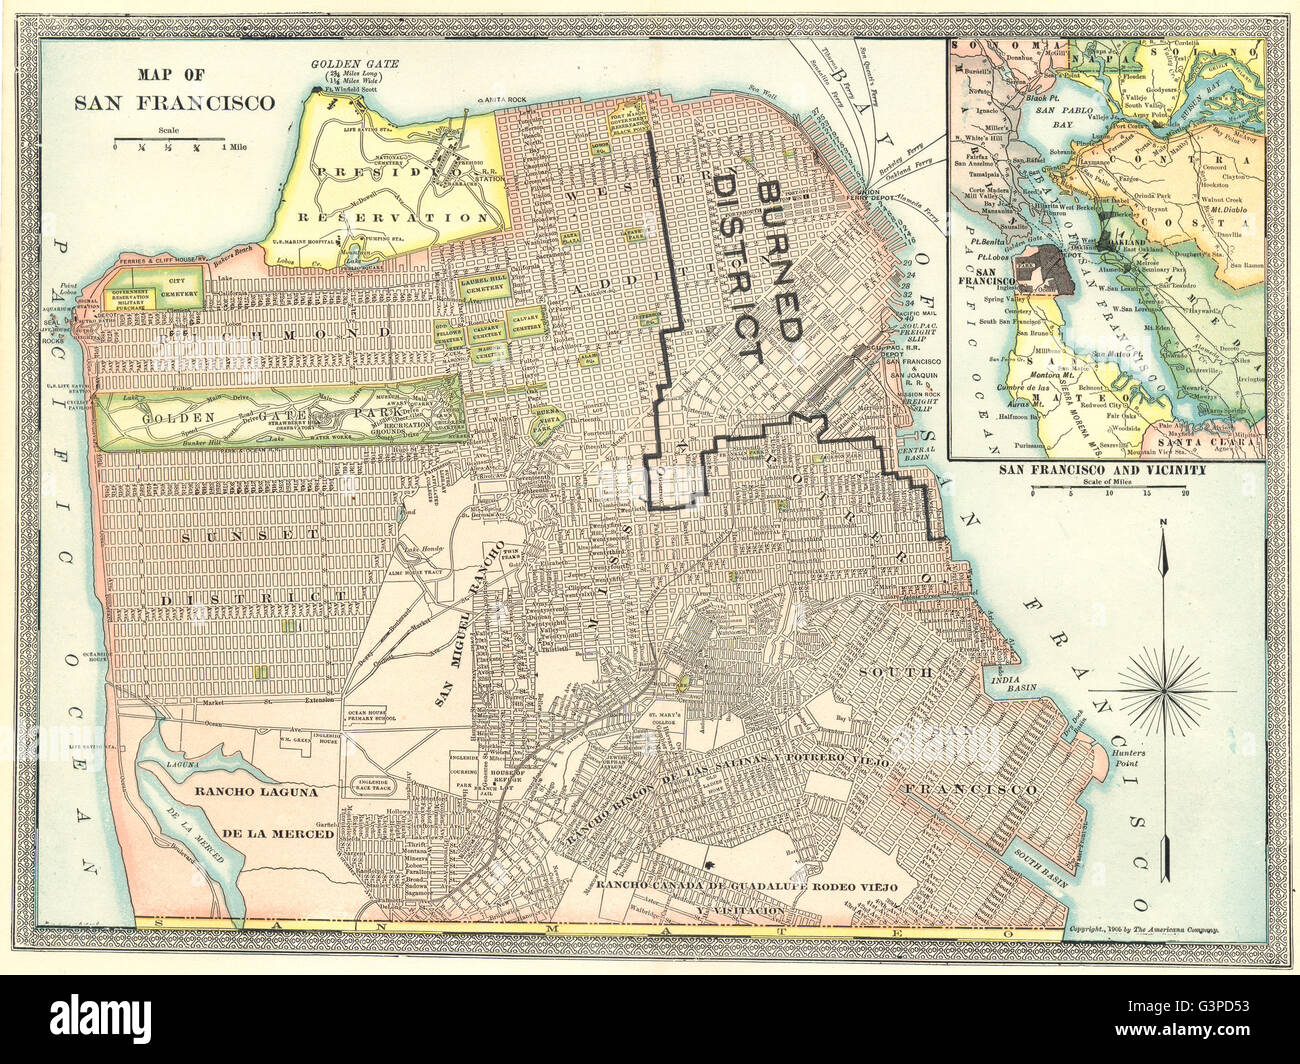 SAN FRANCISCO town/city plan showing area destro in 1906 Stock ... on